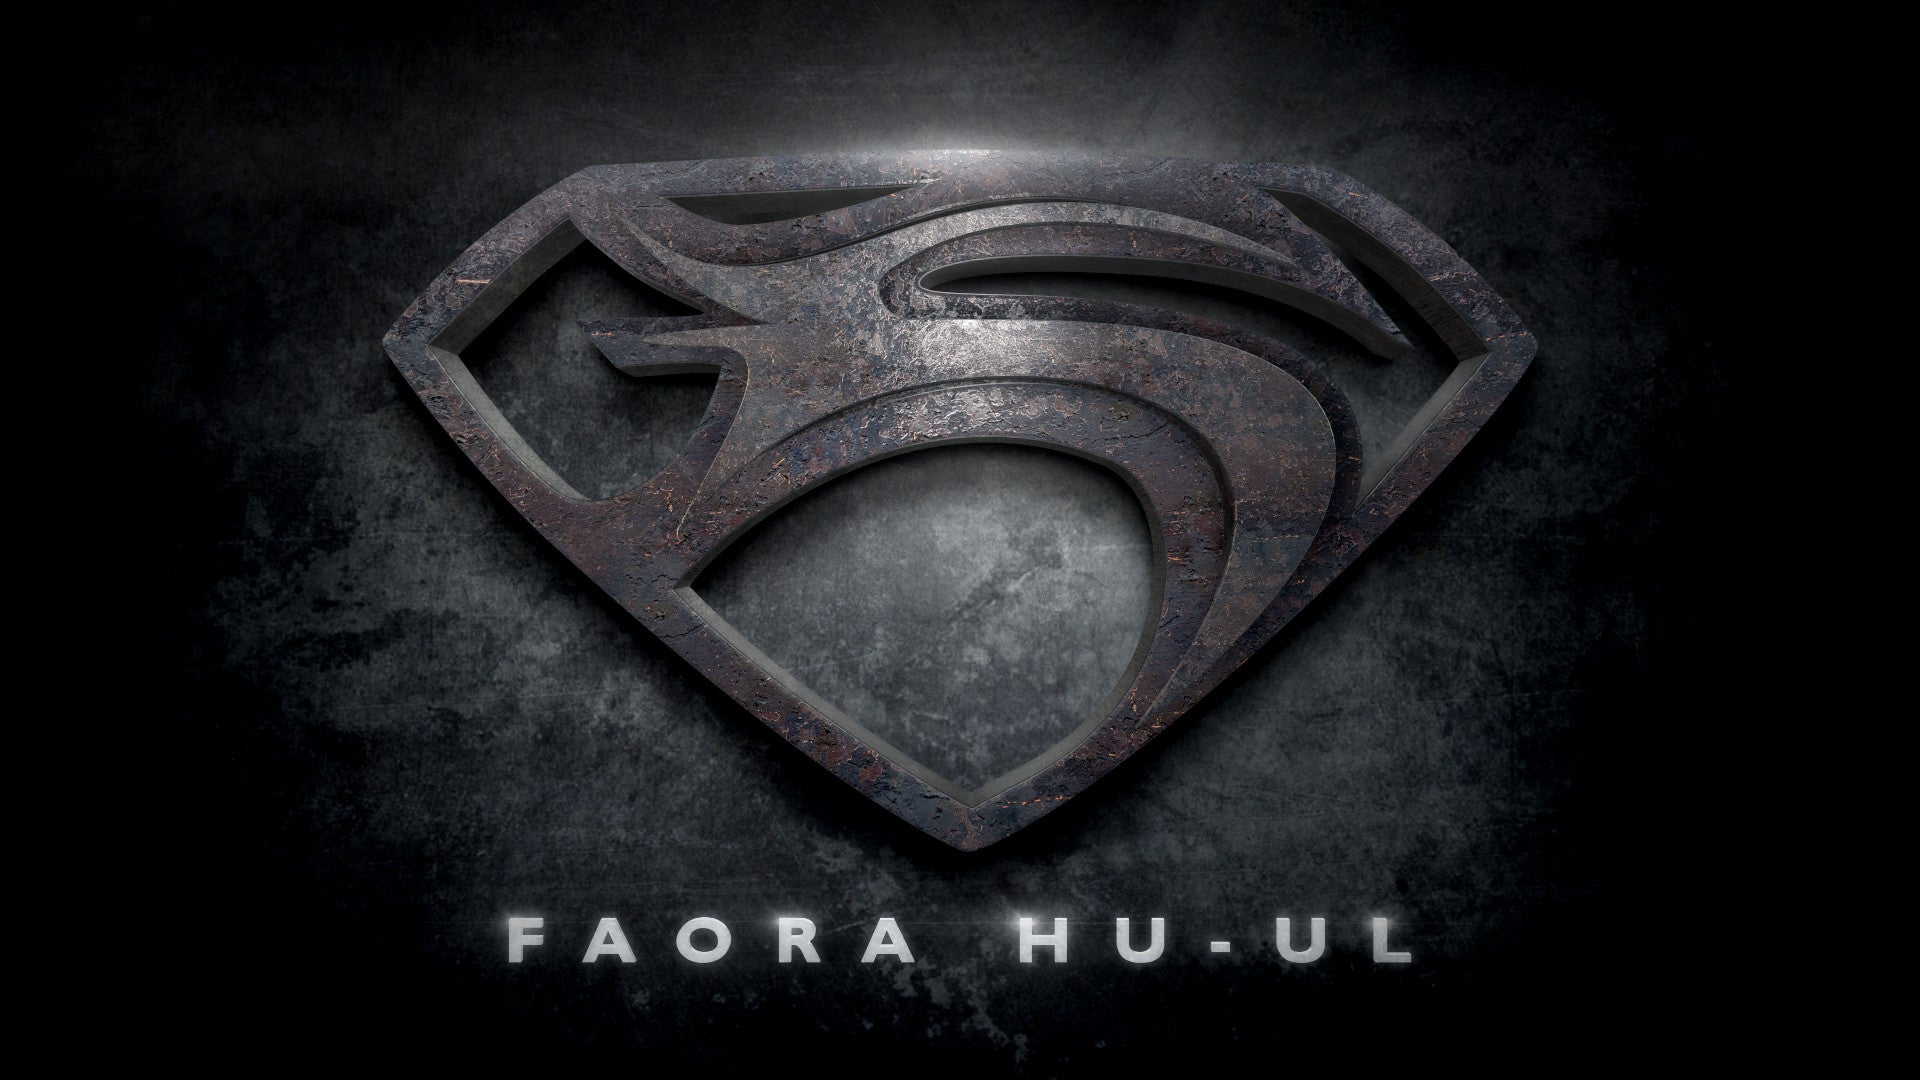 Man Of Steel Fan Art Gives Our Best Look Yet At Faoras Shield